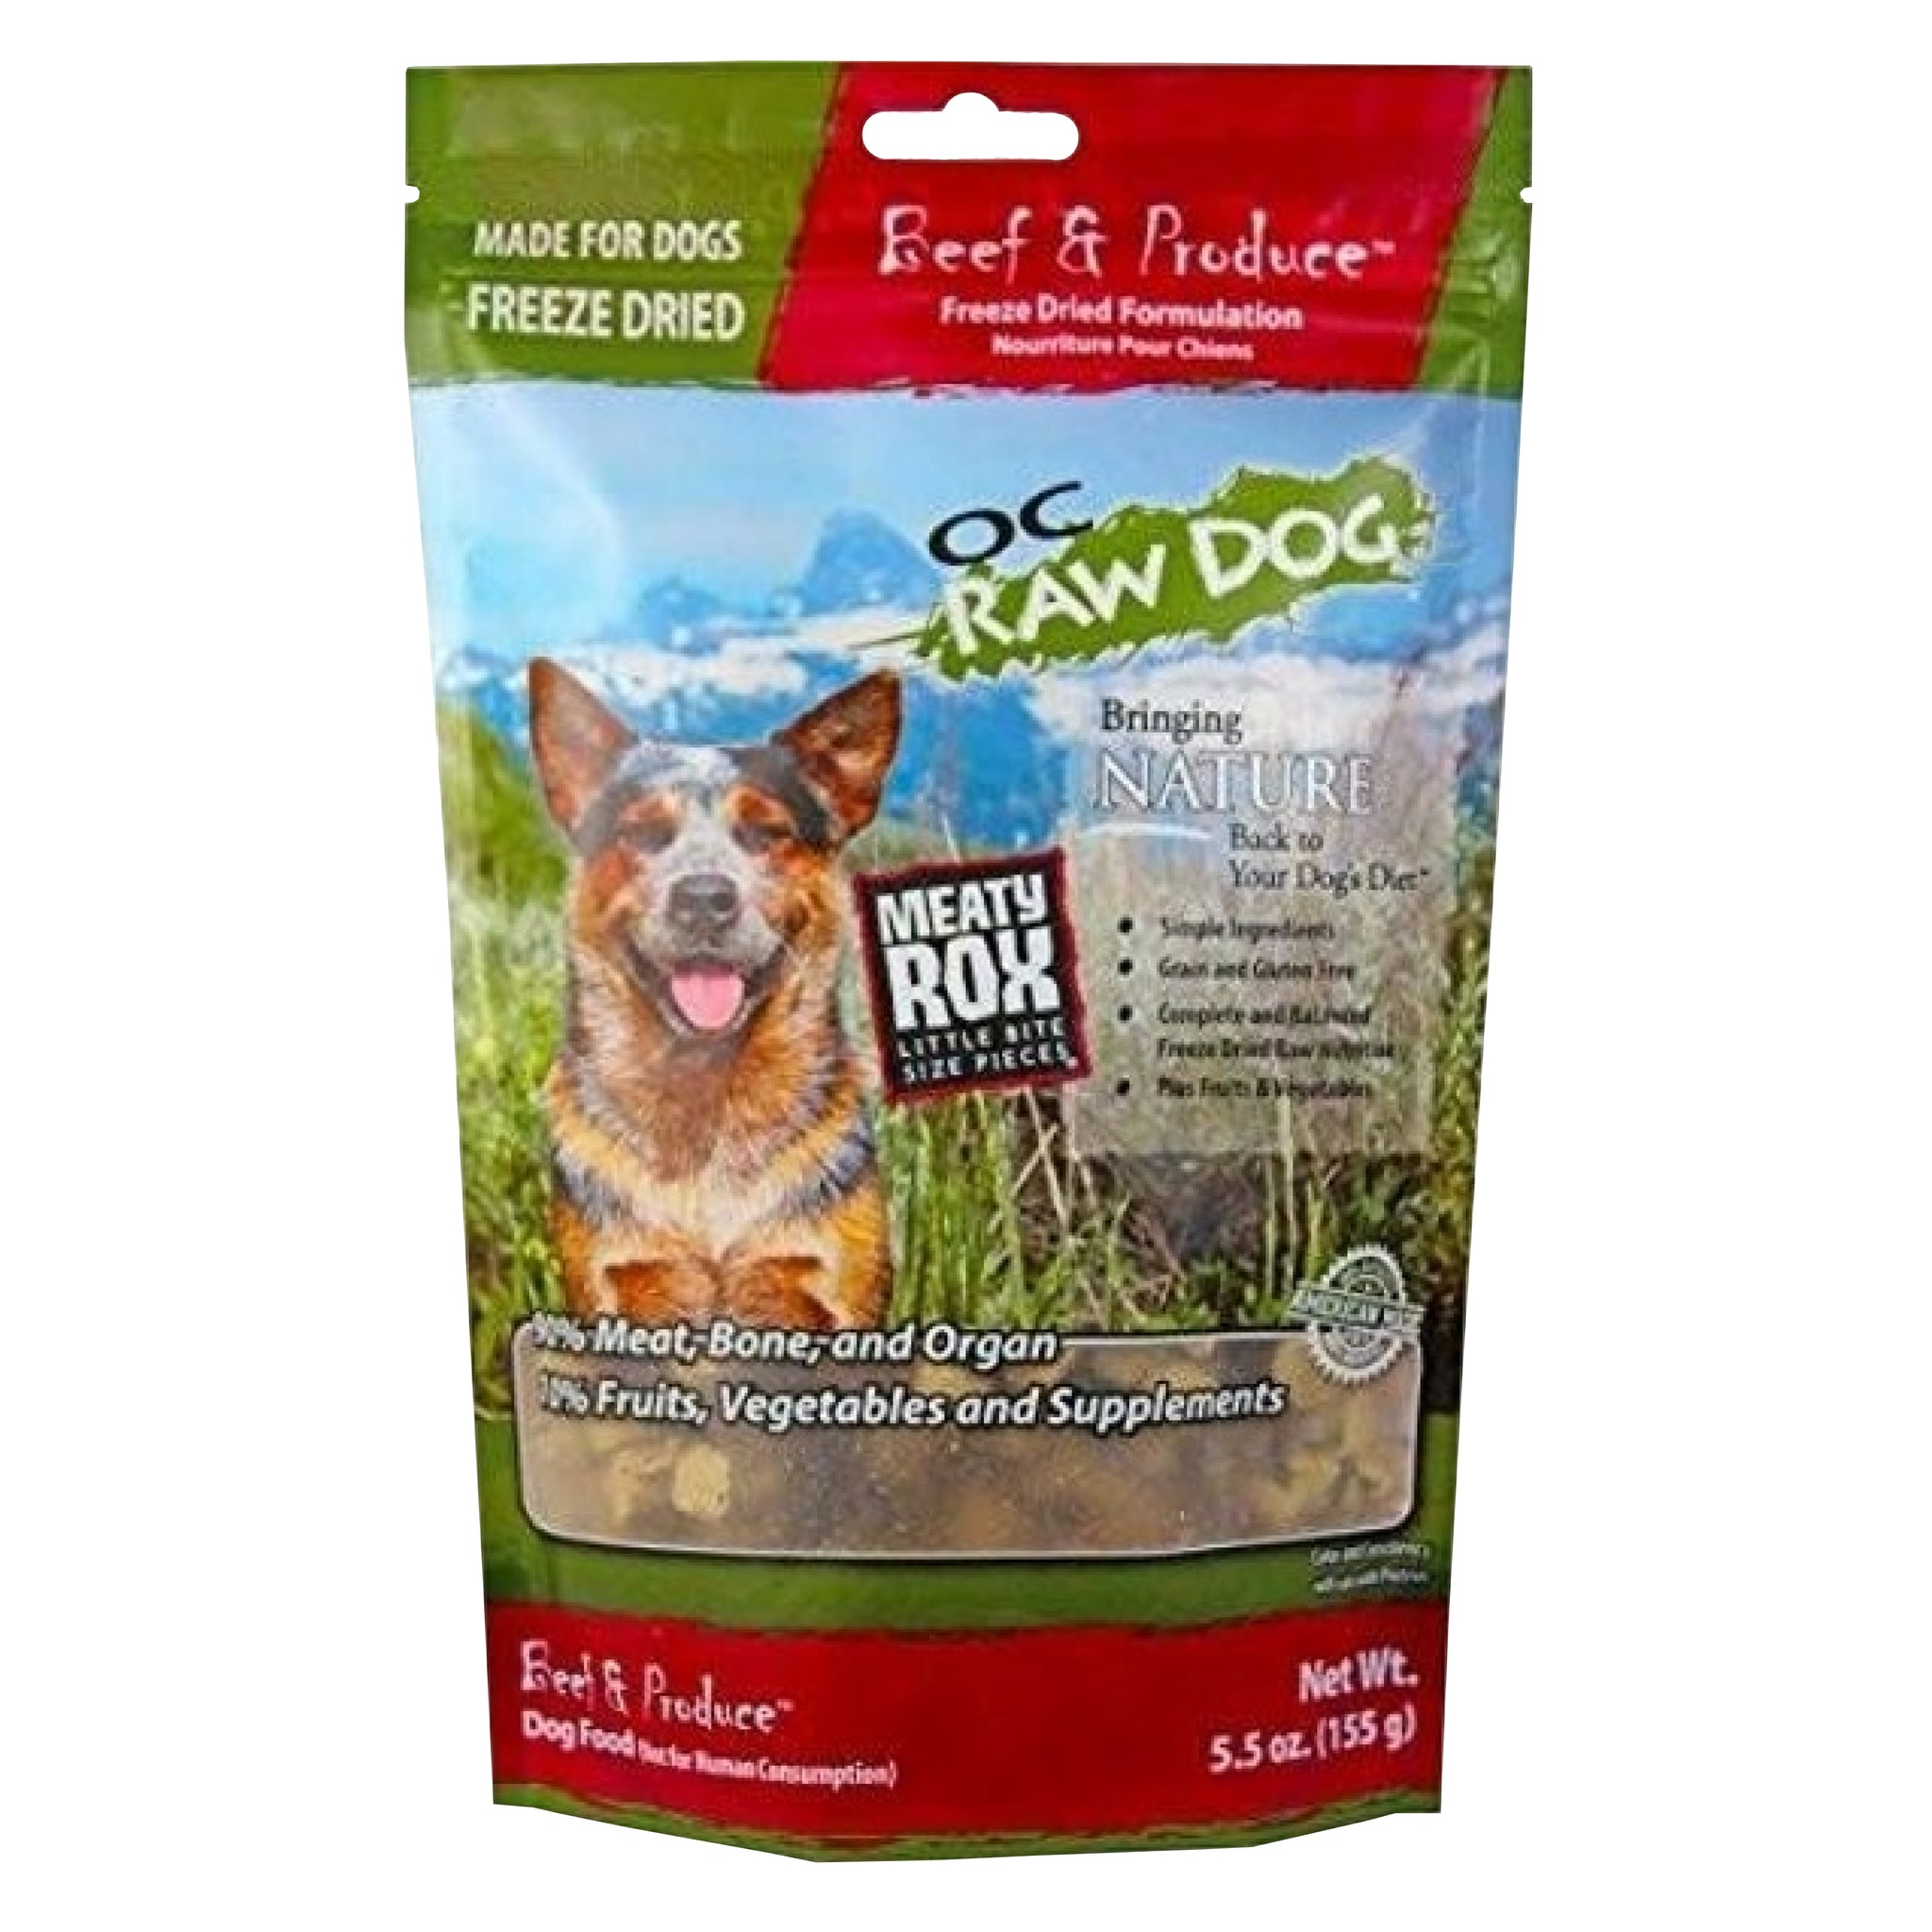 OC Raw Dog Meaty Rox Beef & Produce Freeze Dried Dog Food Topper 5.5oz